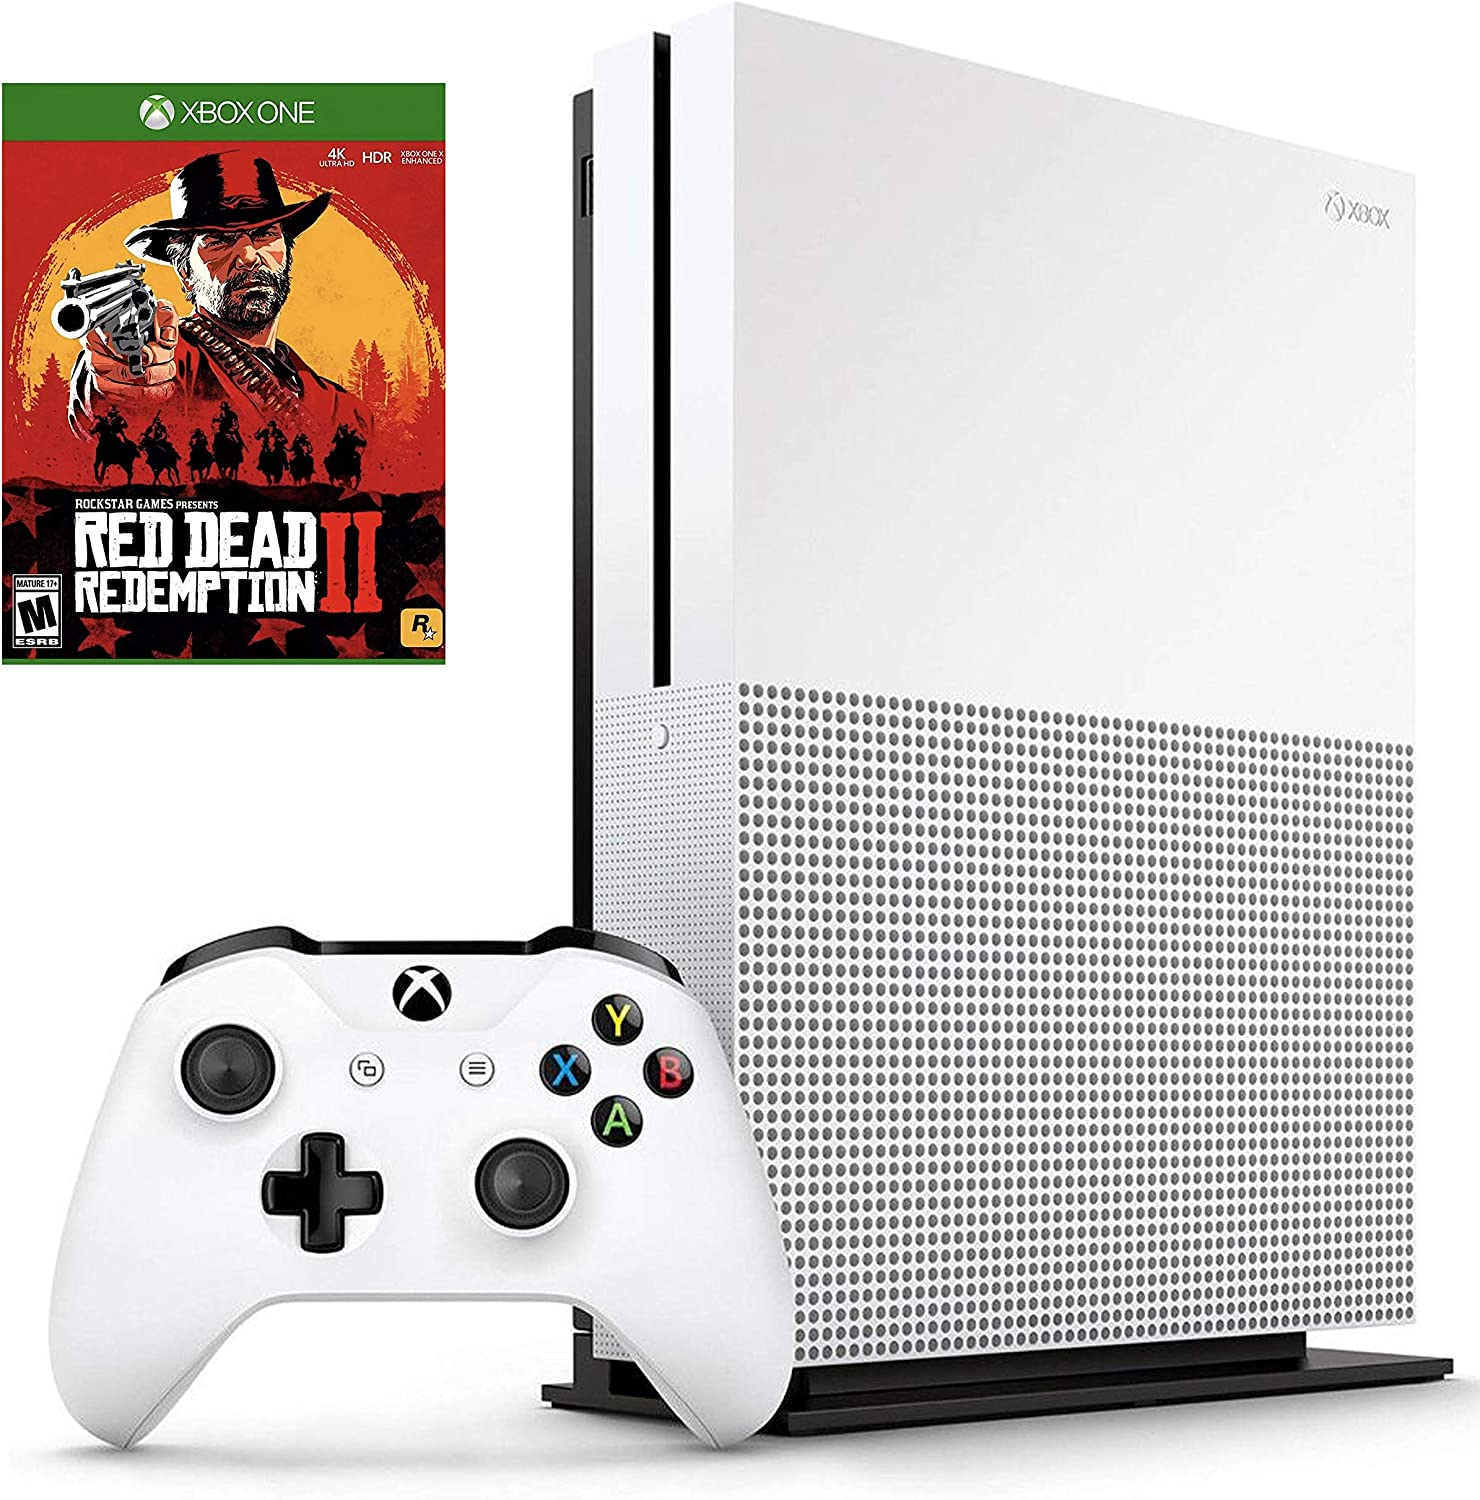 Microsoft Xbox One S 500GB with Wireless Controller and Red Dead Redemption 2 bundle